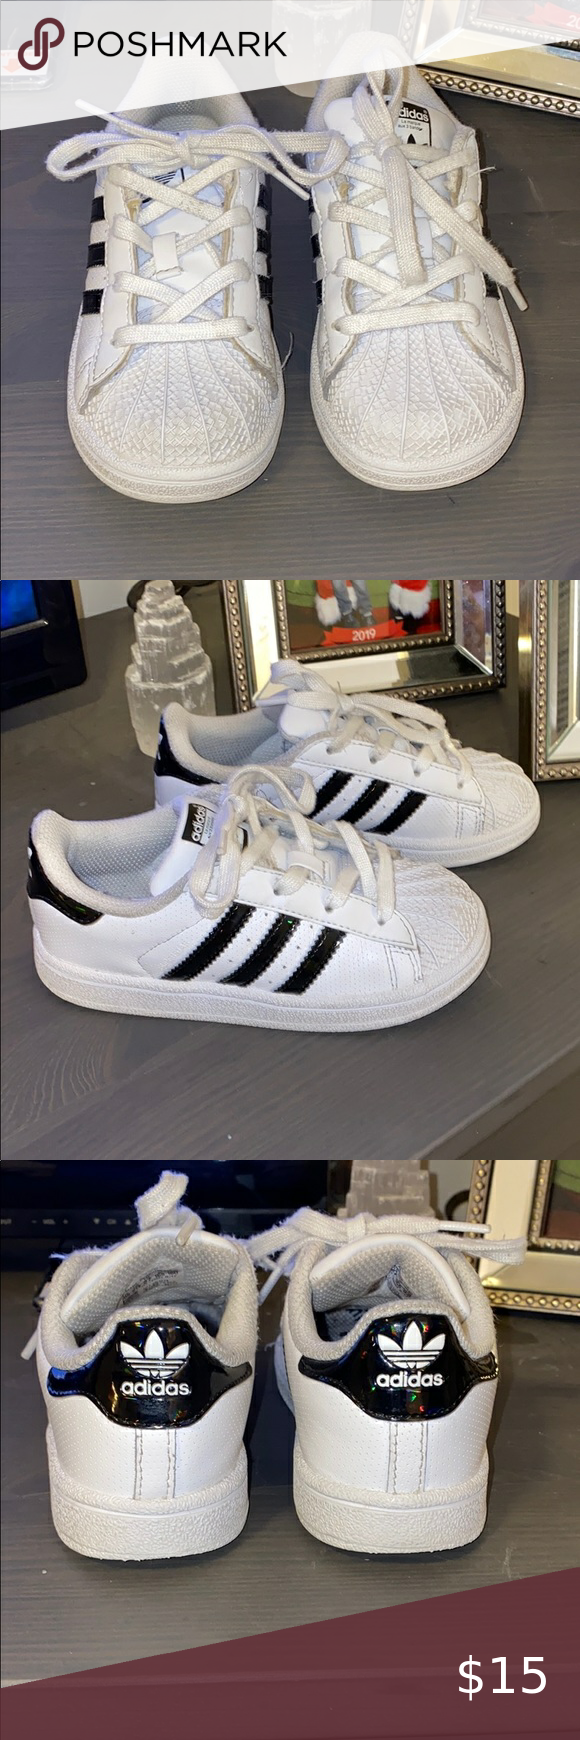 adidas shoes for 3 year old